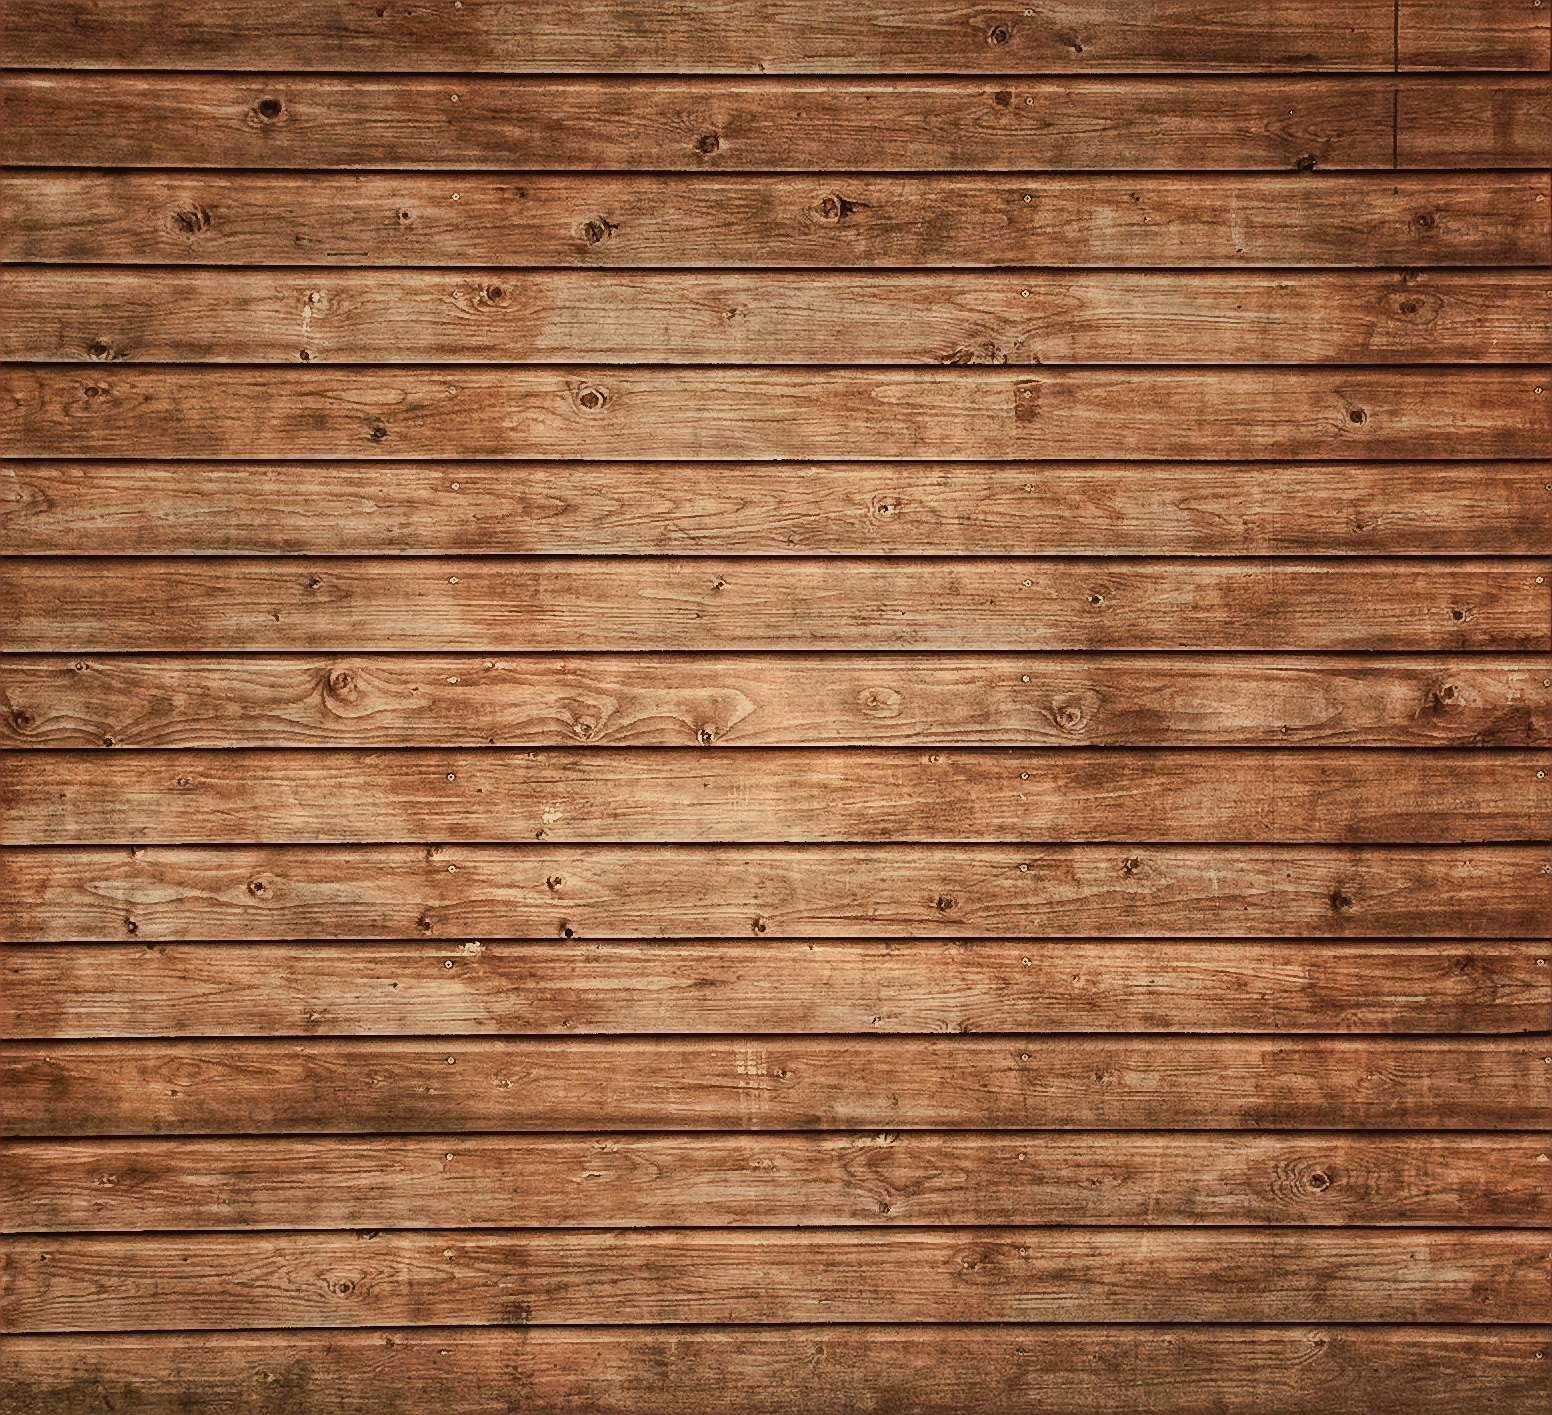 textures wallpapers free wood texture grunge wood First Baptist 1552x1415